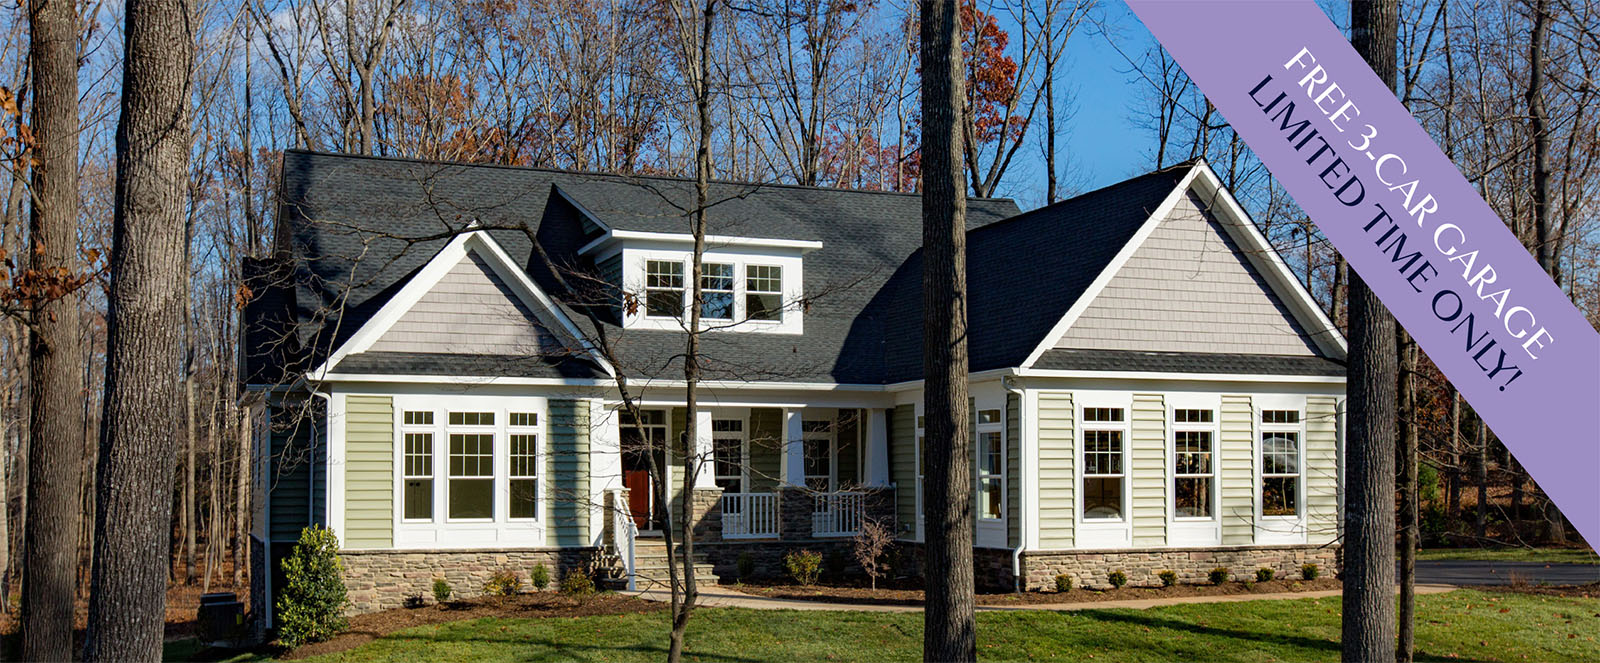 The birchwood simply home custom home builders in virginia for Custom home builders fredericksburg va